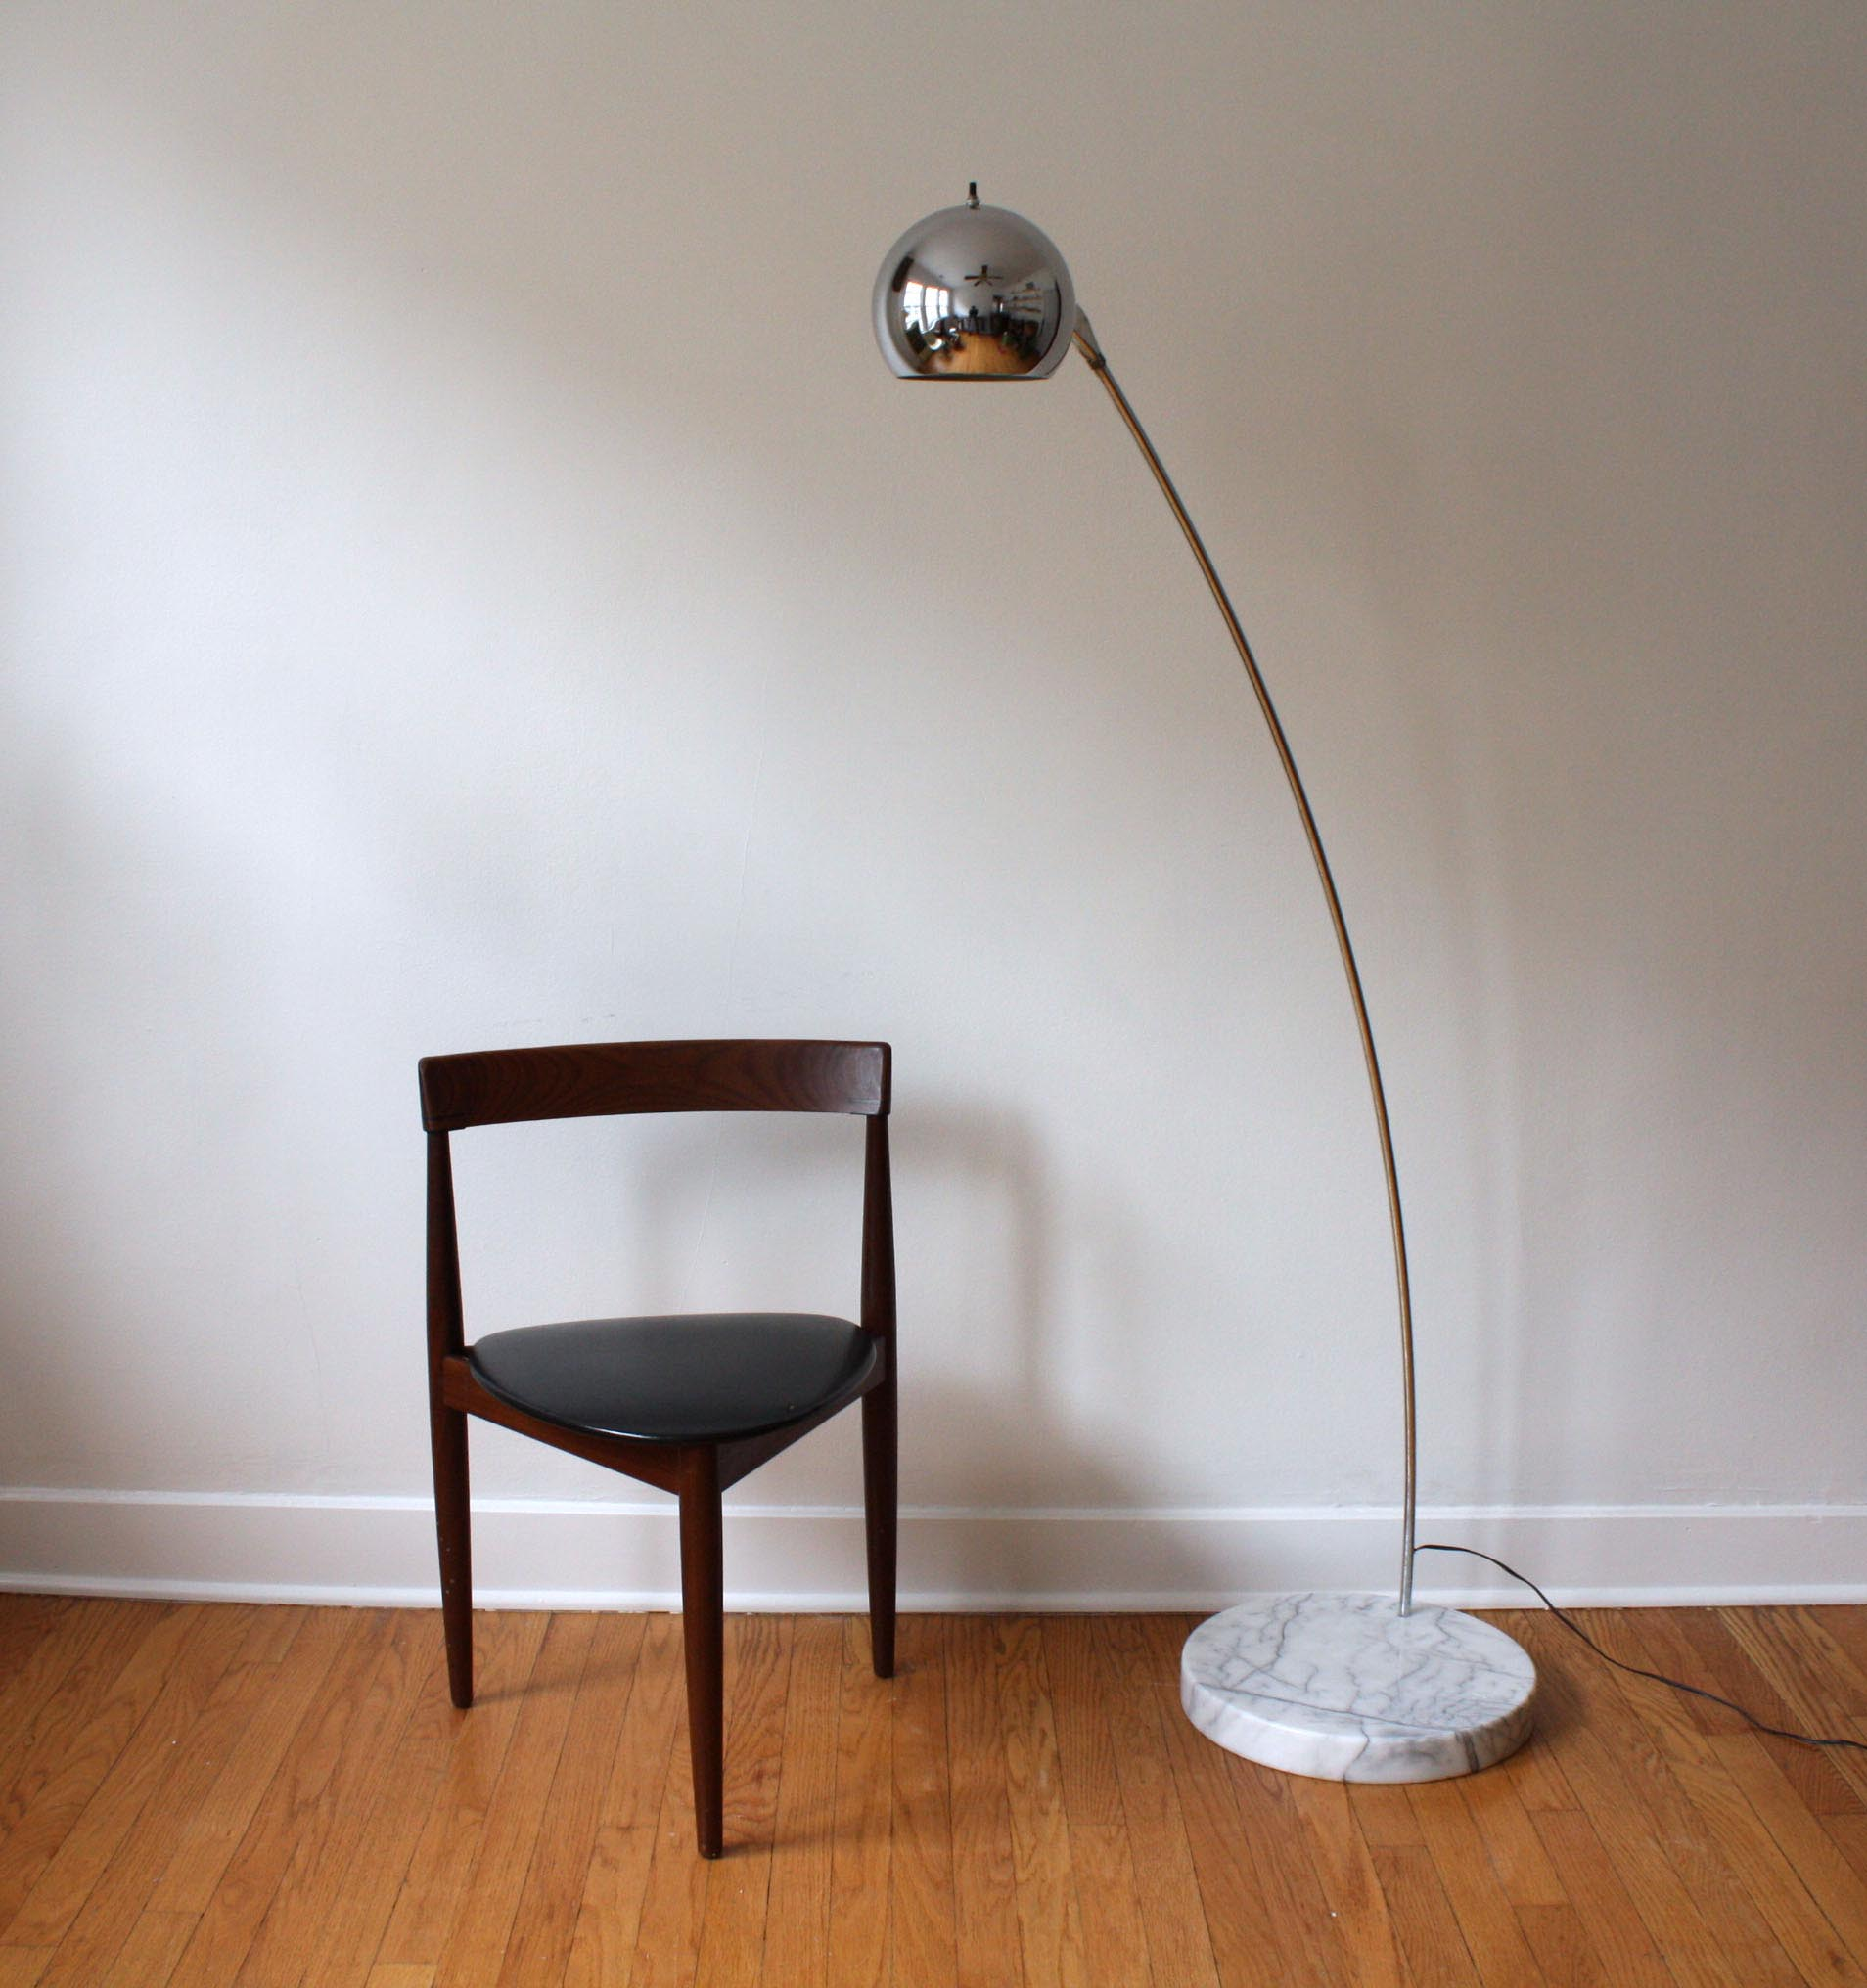 Arch floor lamps contemporary light fixtures design ideas for Arch floor lamps for living room